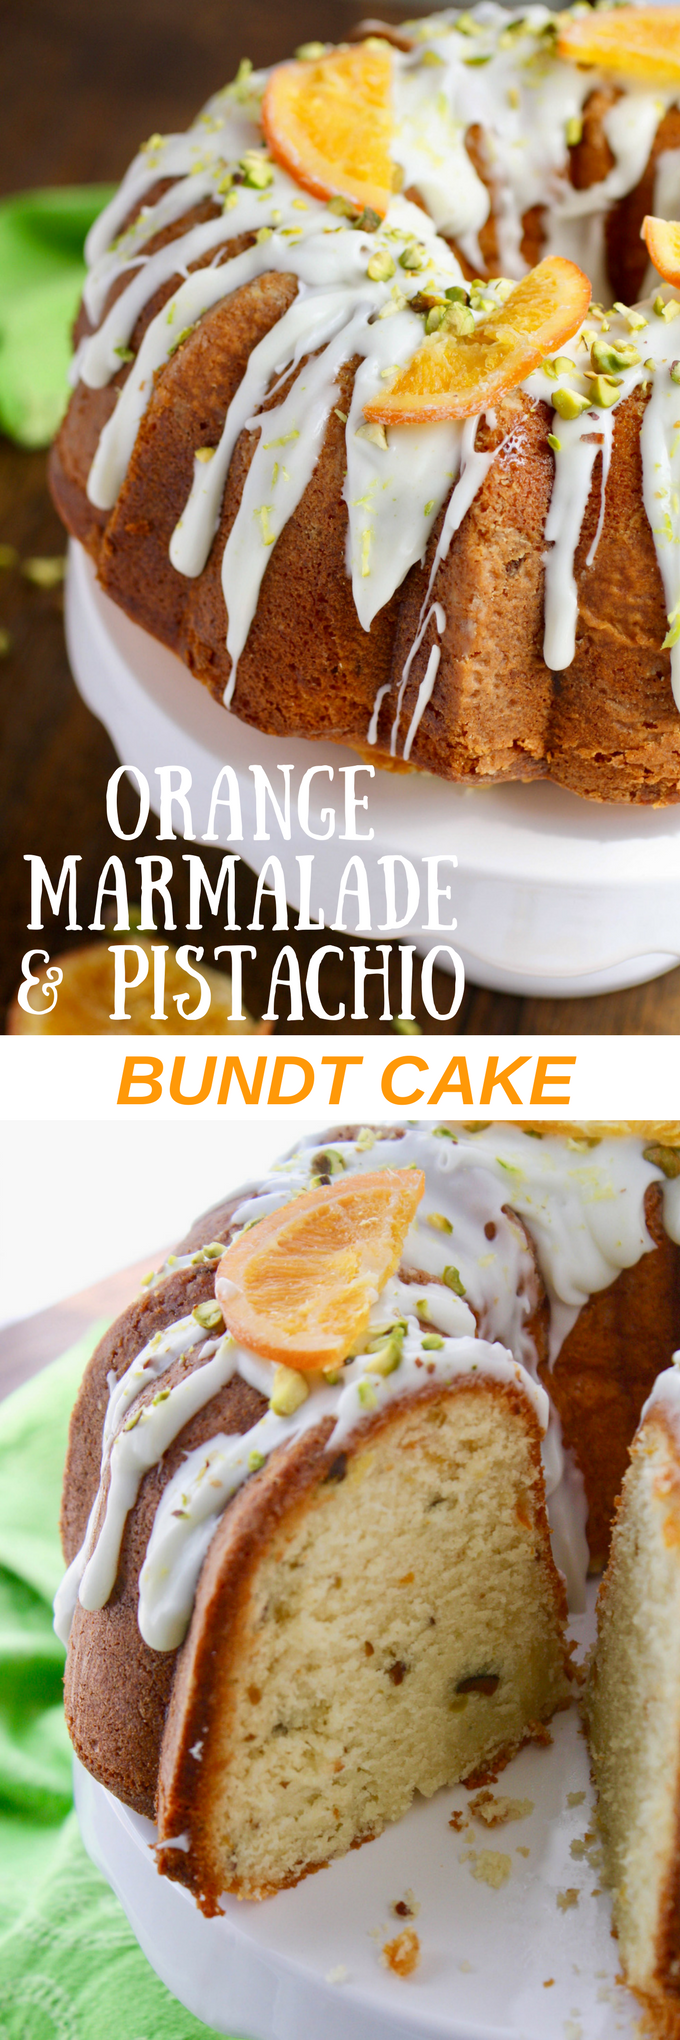 Orange Marmalade-Pistachio Bundt Cake is a true treat! Make this for dessert today!